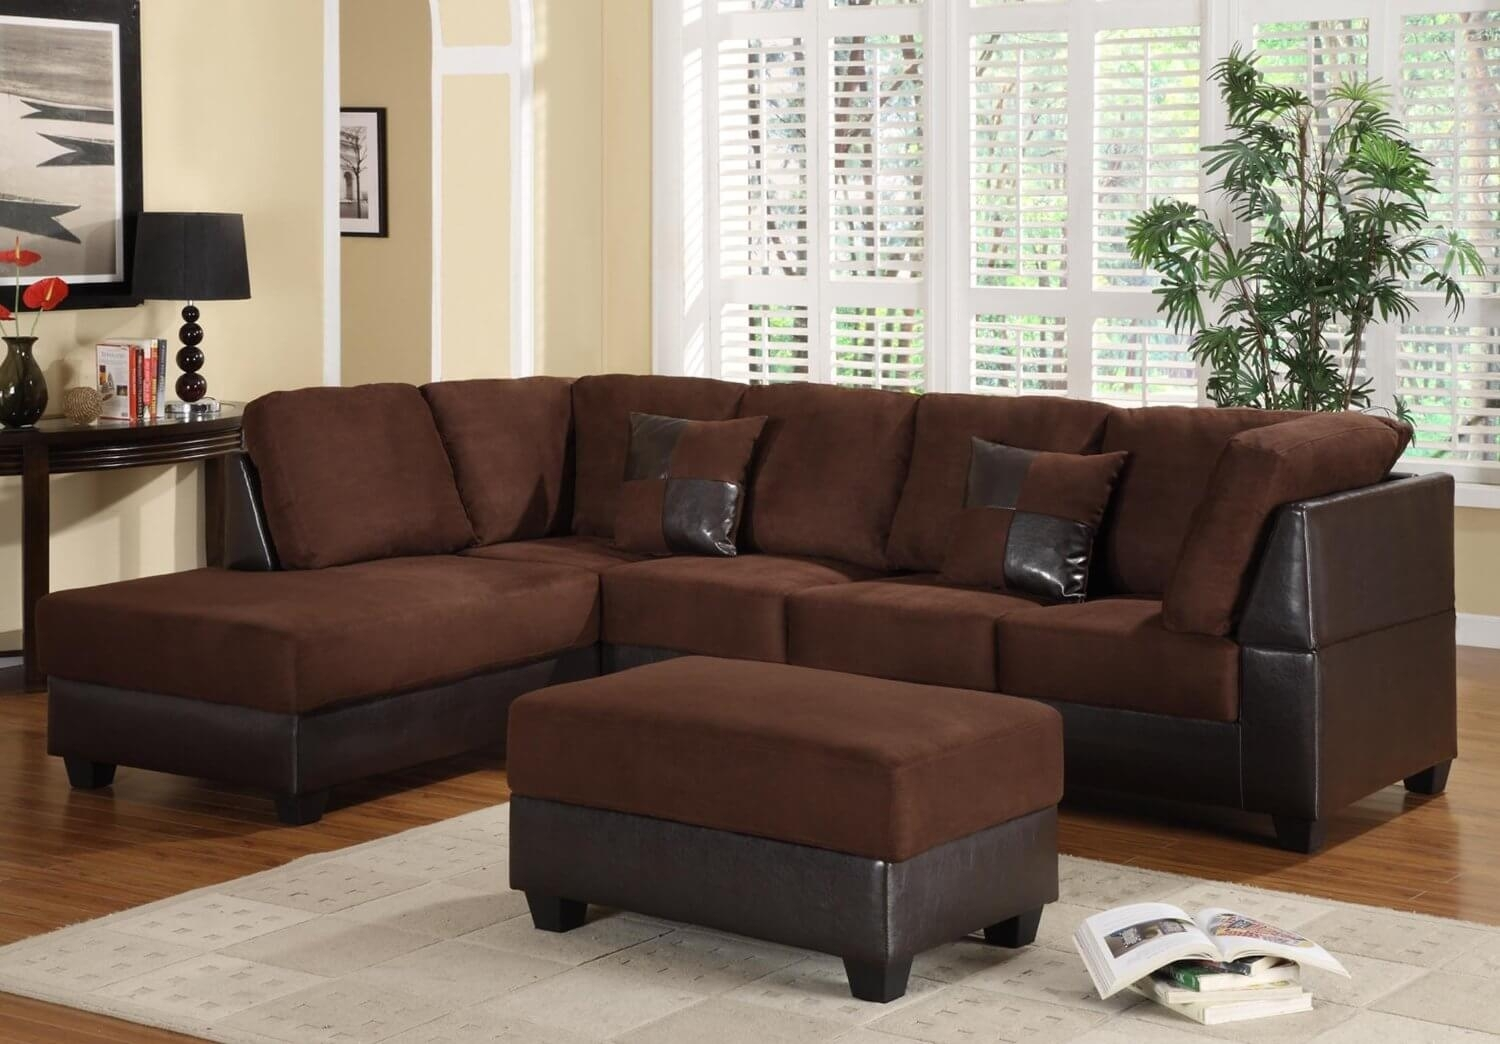 Cheap Sofas And Loveseats Furniture Under 200 For Living Room Throughout Sectional Sofas Under  (Image 2 of 10)